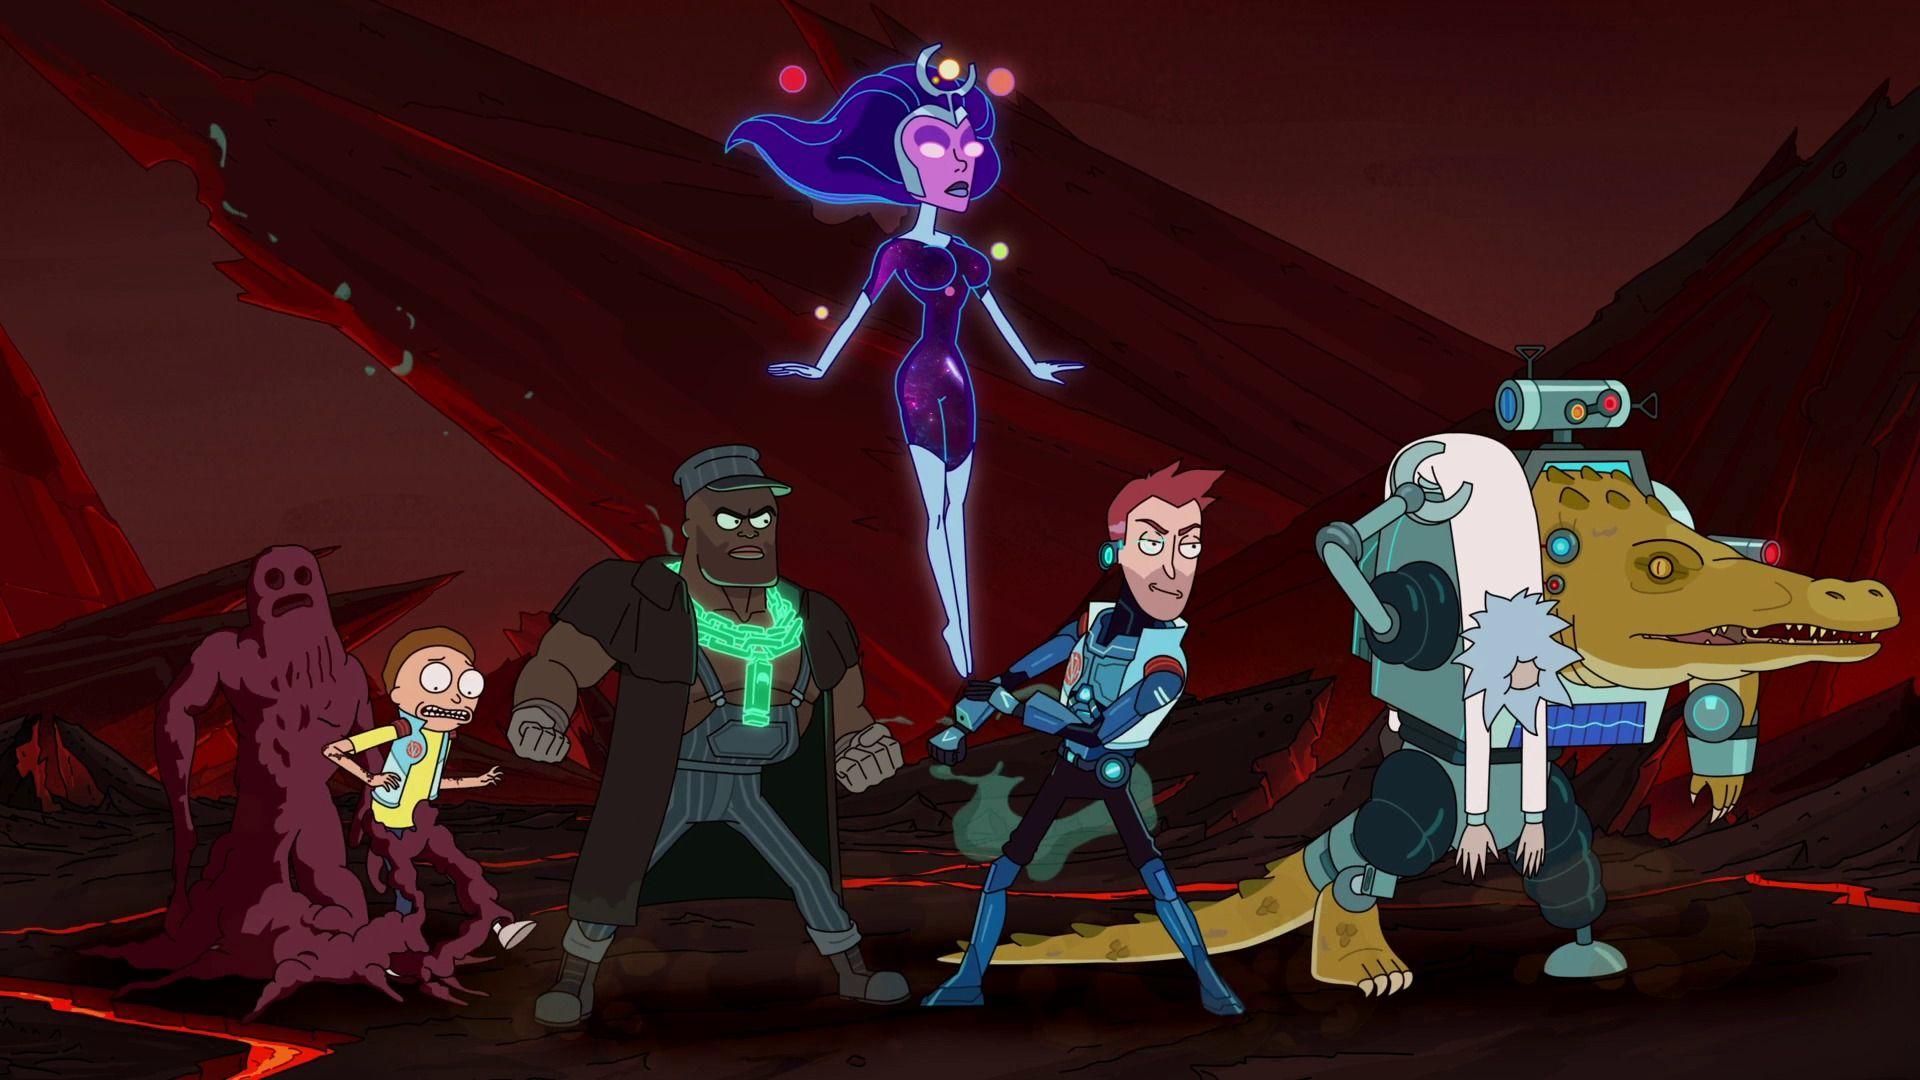 Rick and Morty Vindicators Spinoff Series Ordered by Adult Swim